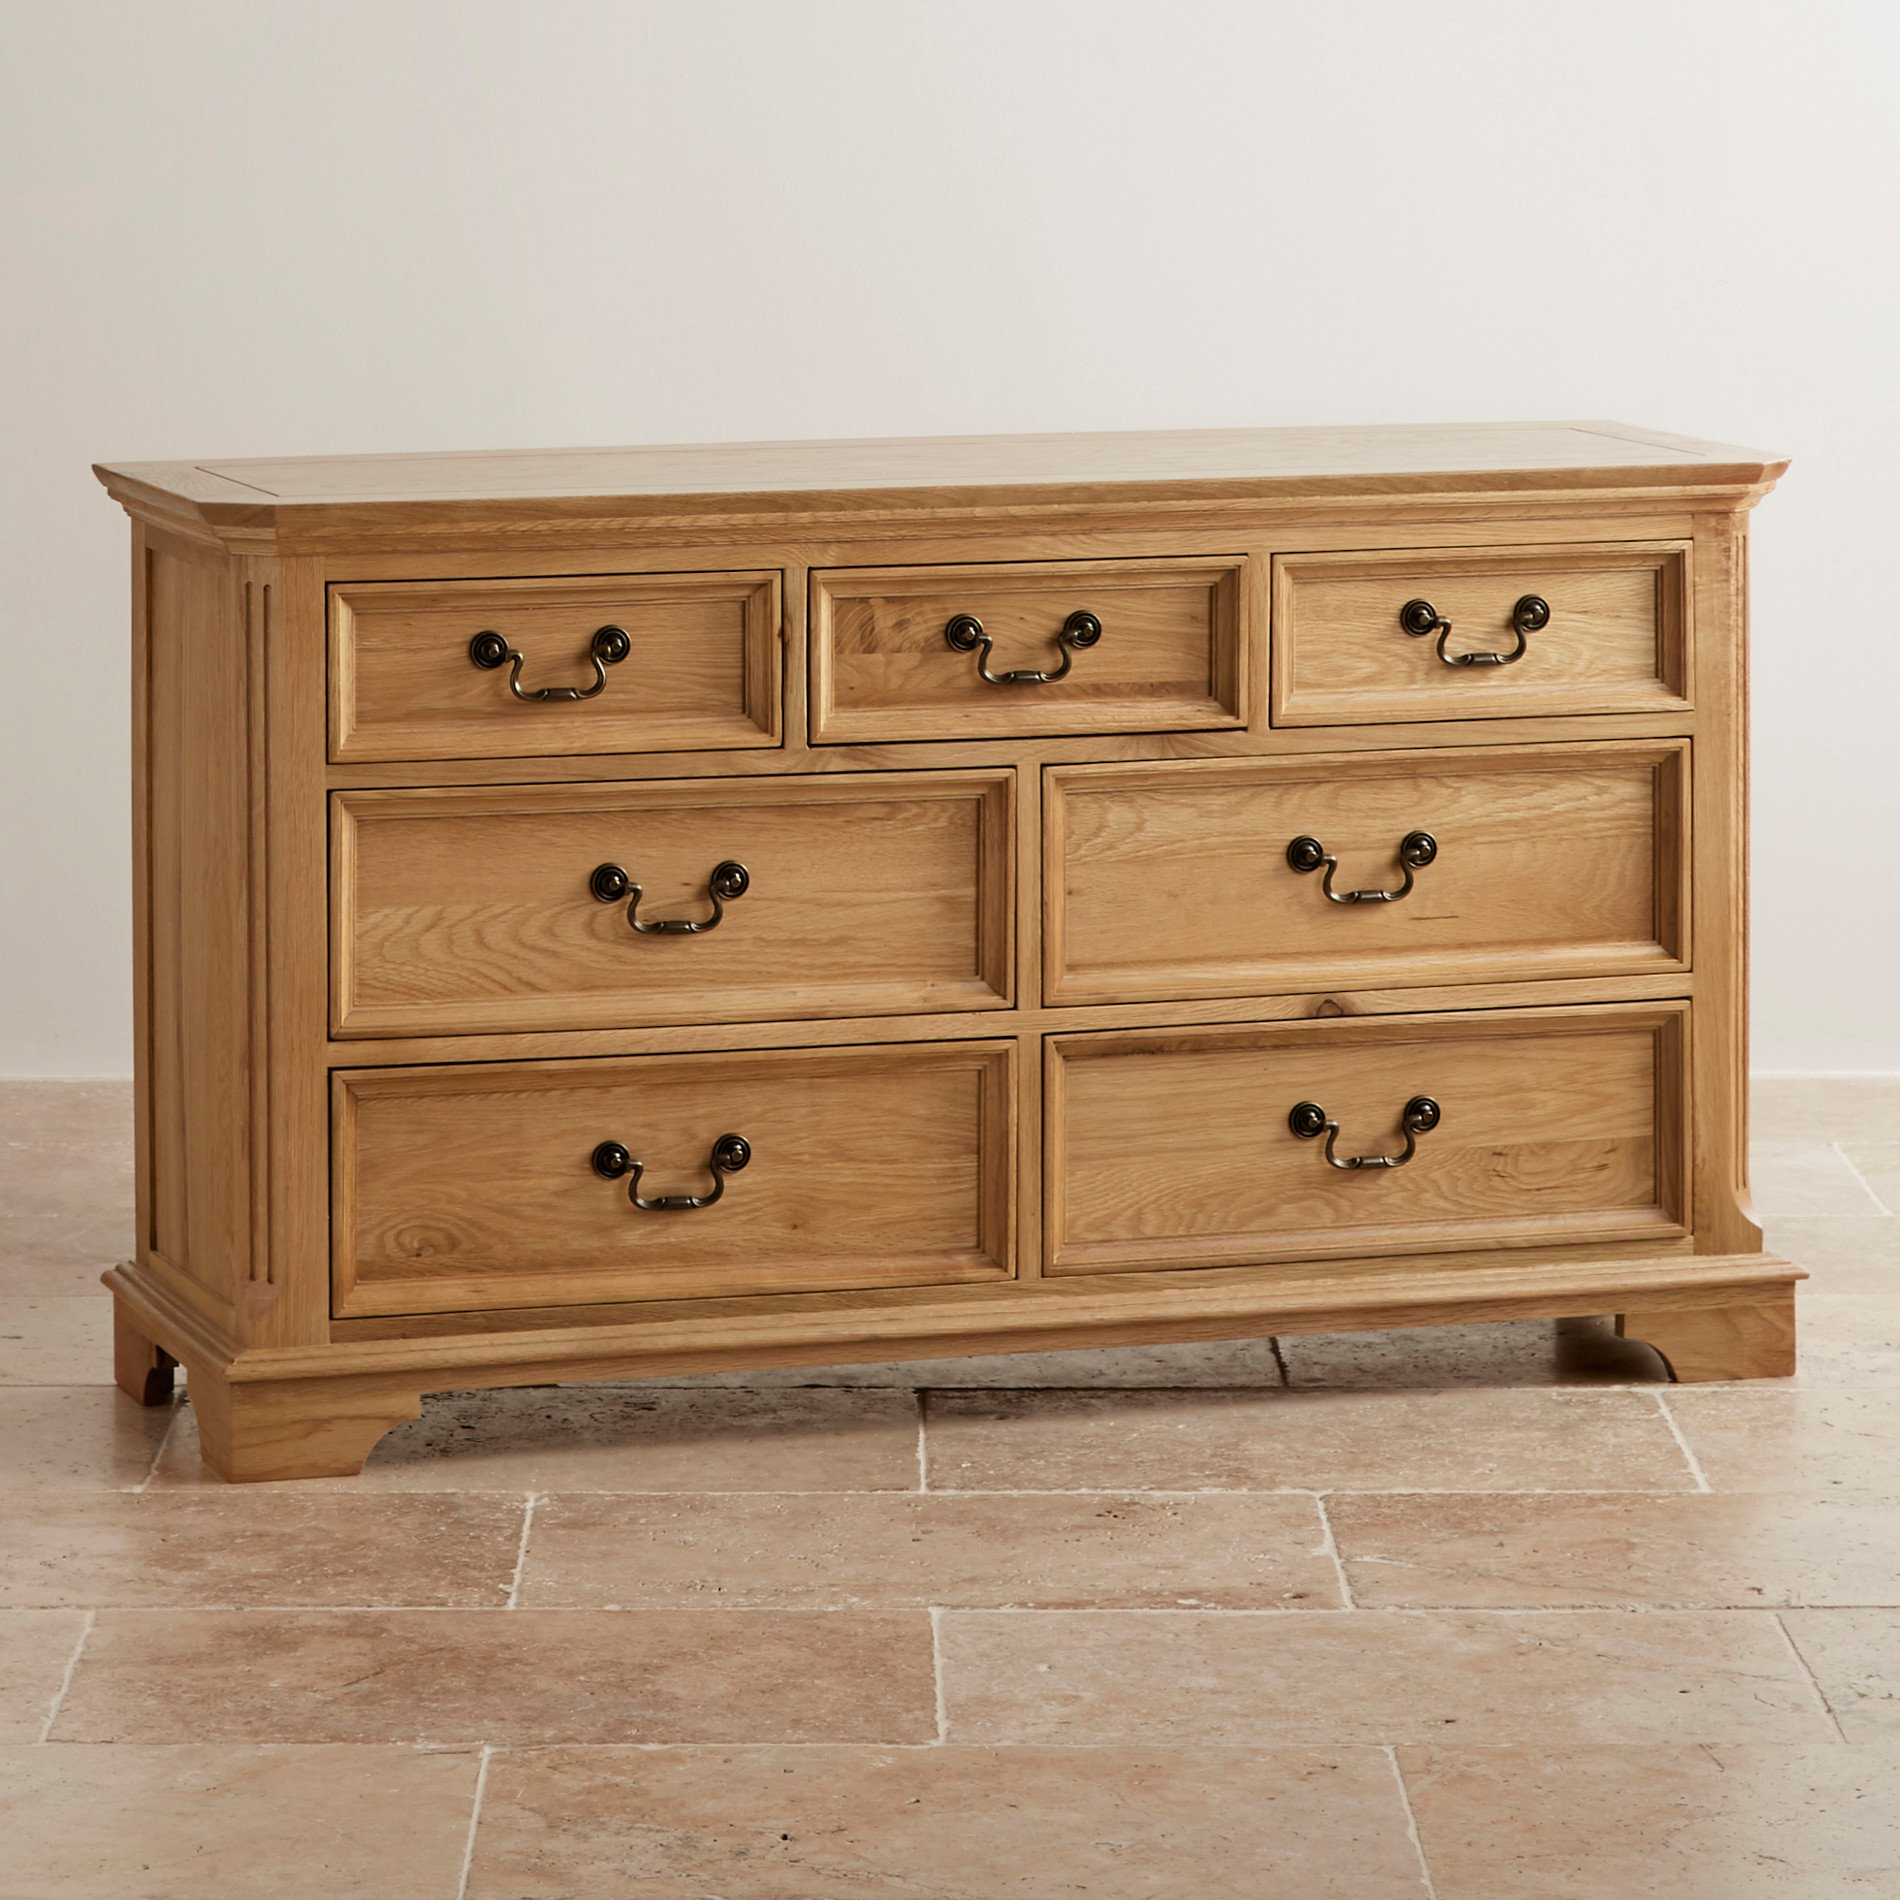 Edinburgh natural solid oak 3 4 chest of drawers for Solid oak furniture